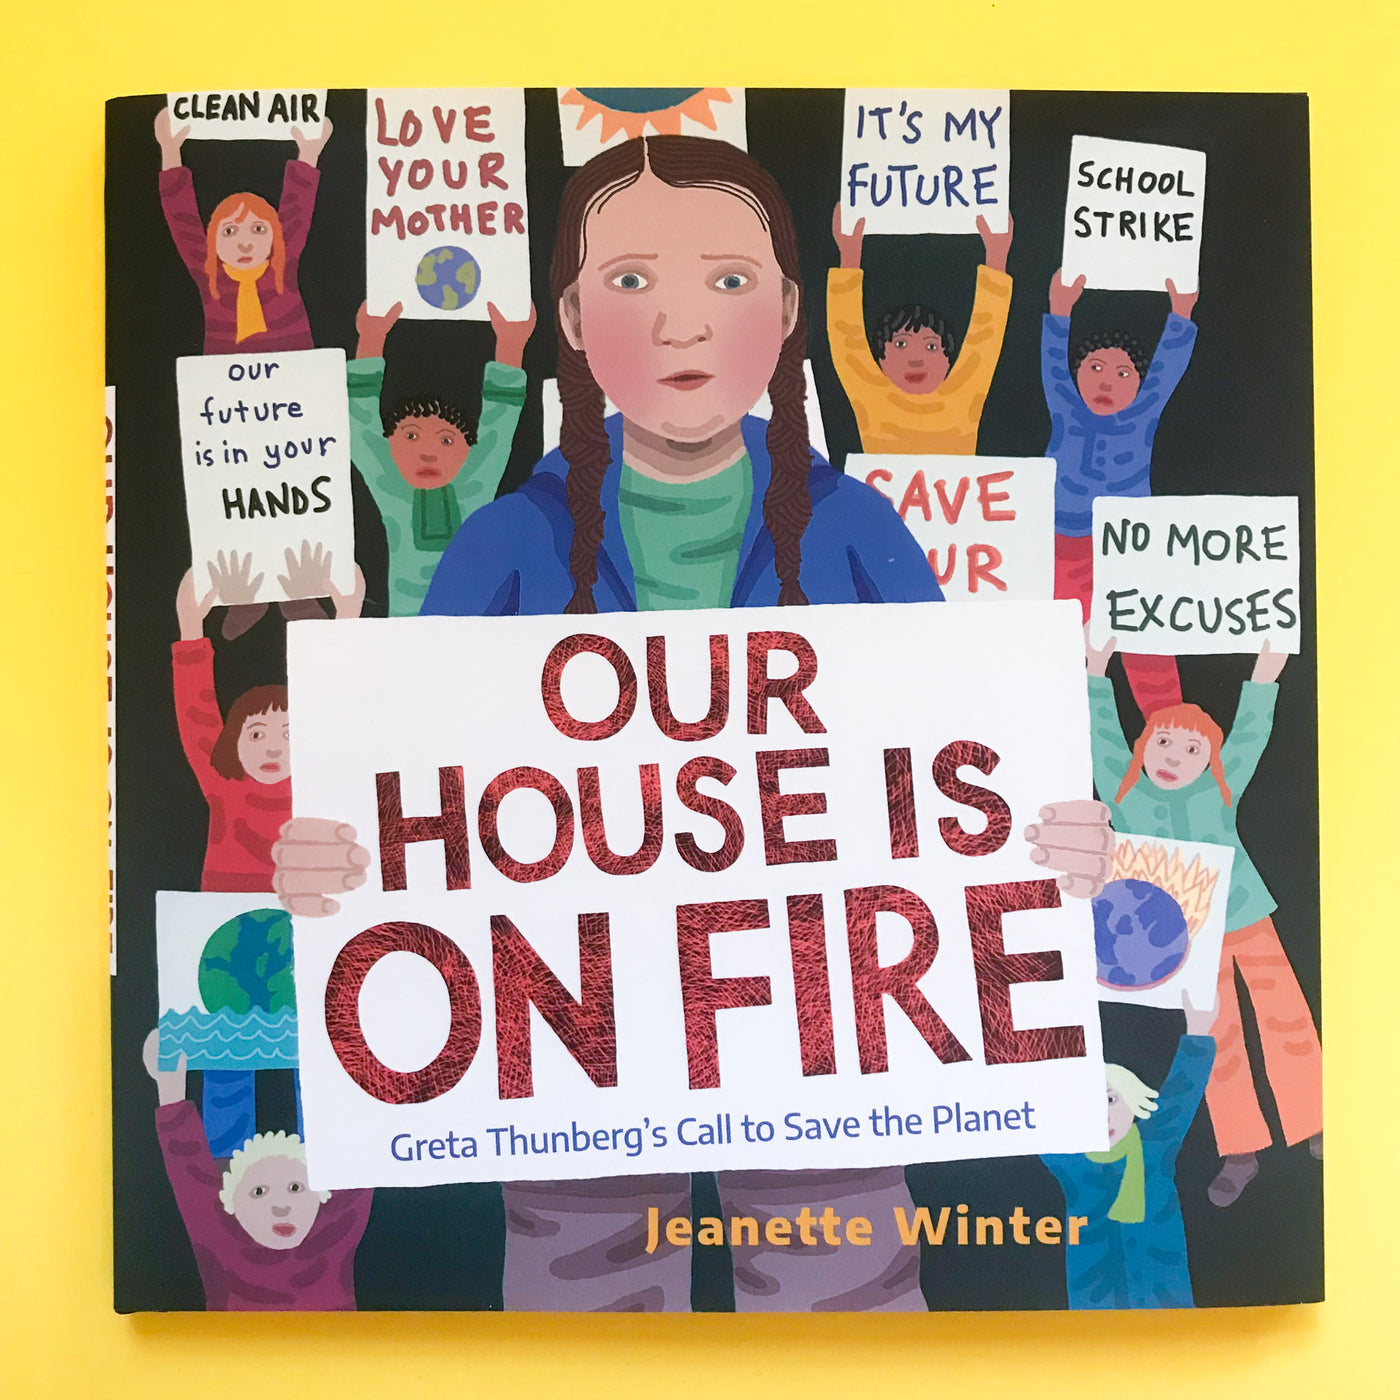 Our House is on Fire Greta Thunberg's Call to Save the Planet by Jeanette Winter